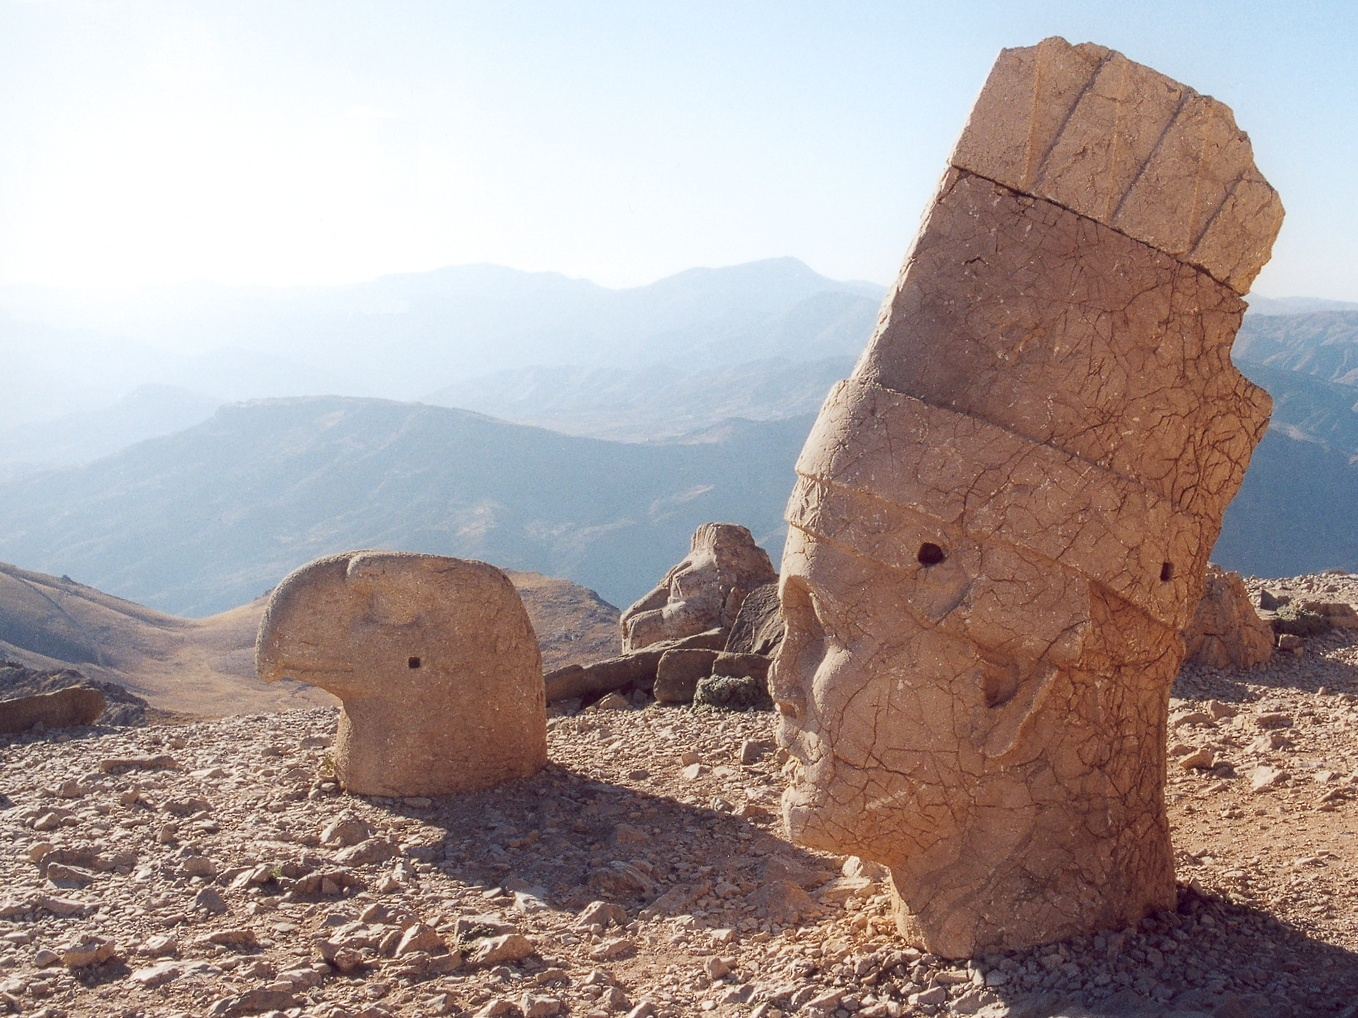 http://upload.wikimedia.org/wikipedia/commons/d/d6/Turkey_nemrut_dagi_3.jpg